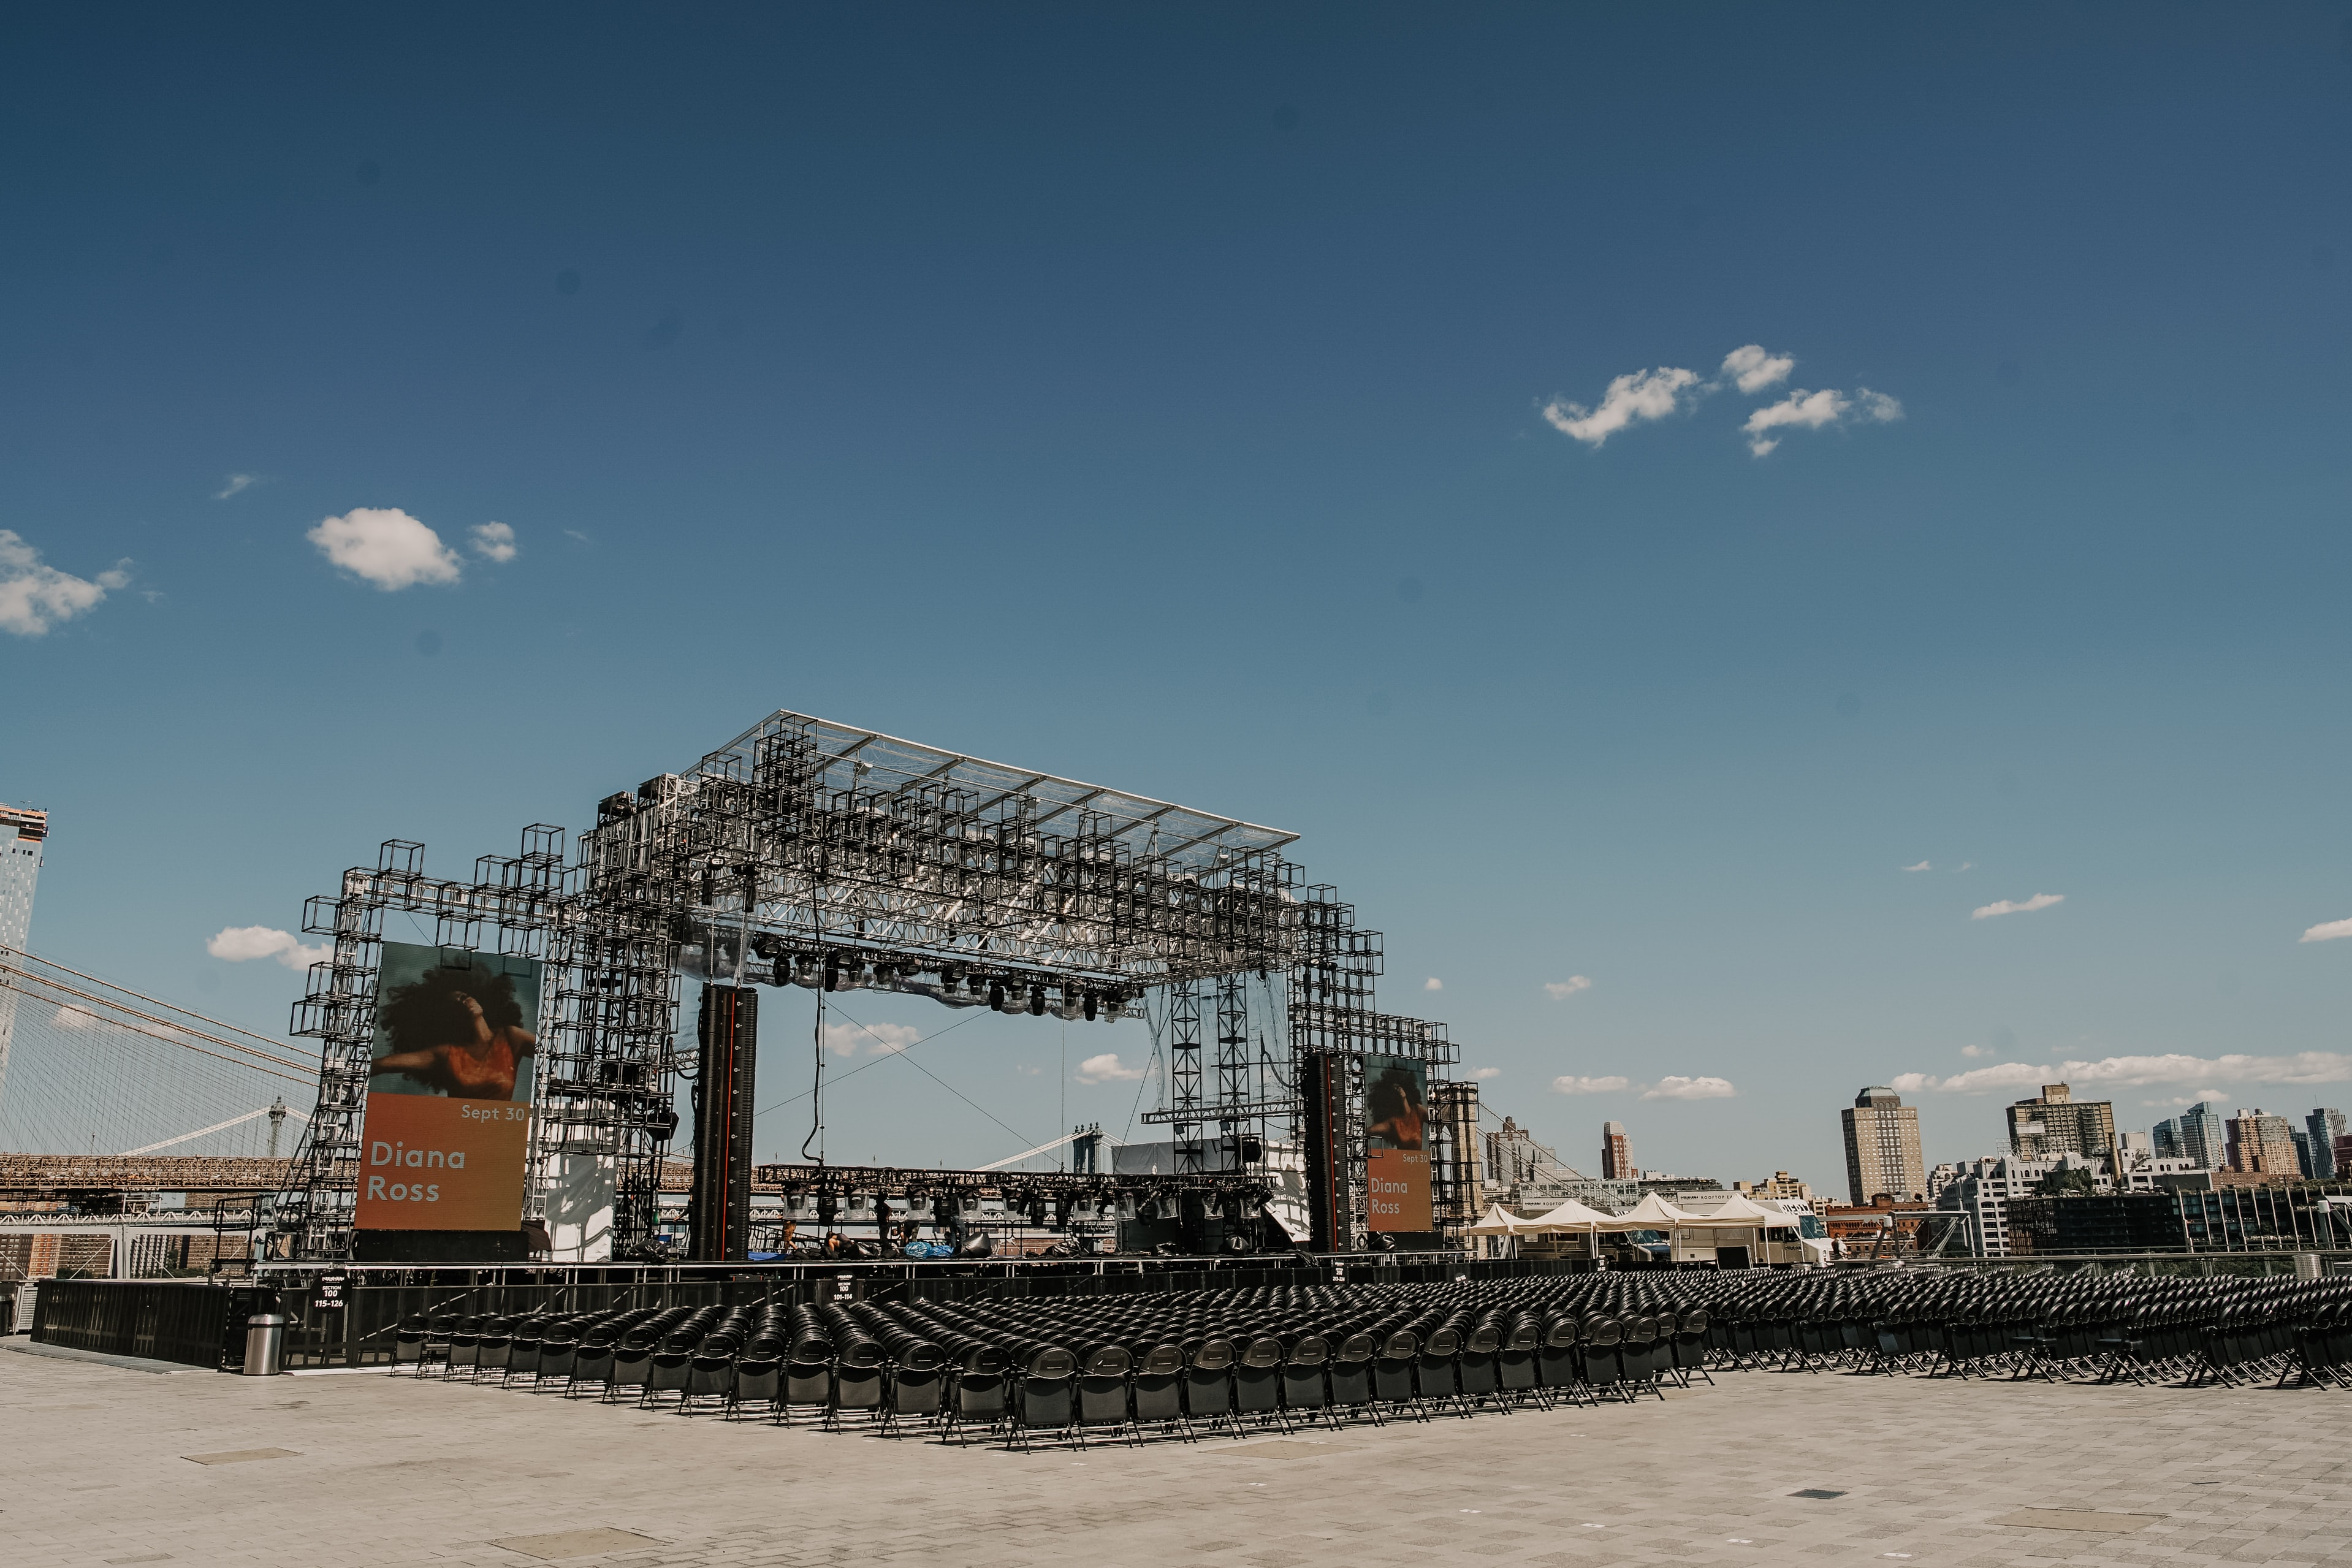 empty stage during daytime